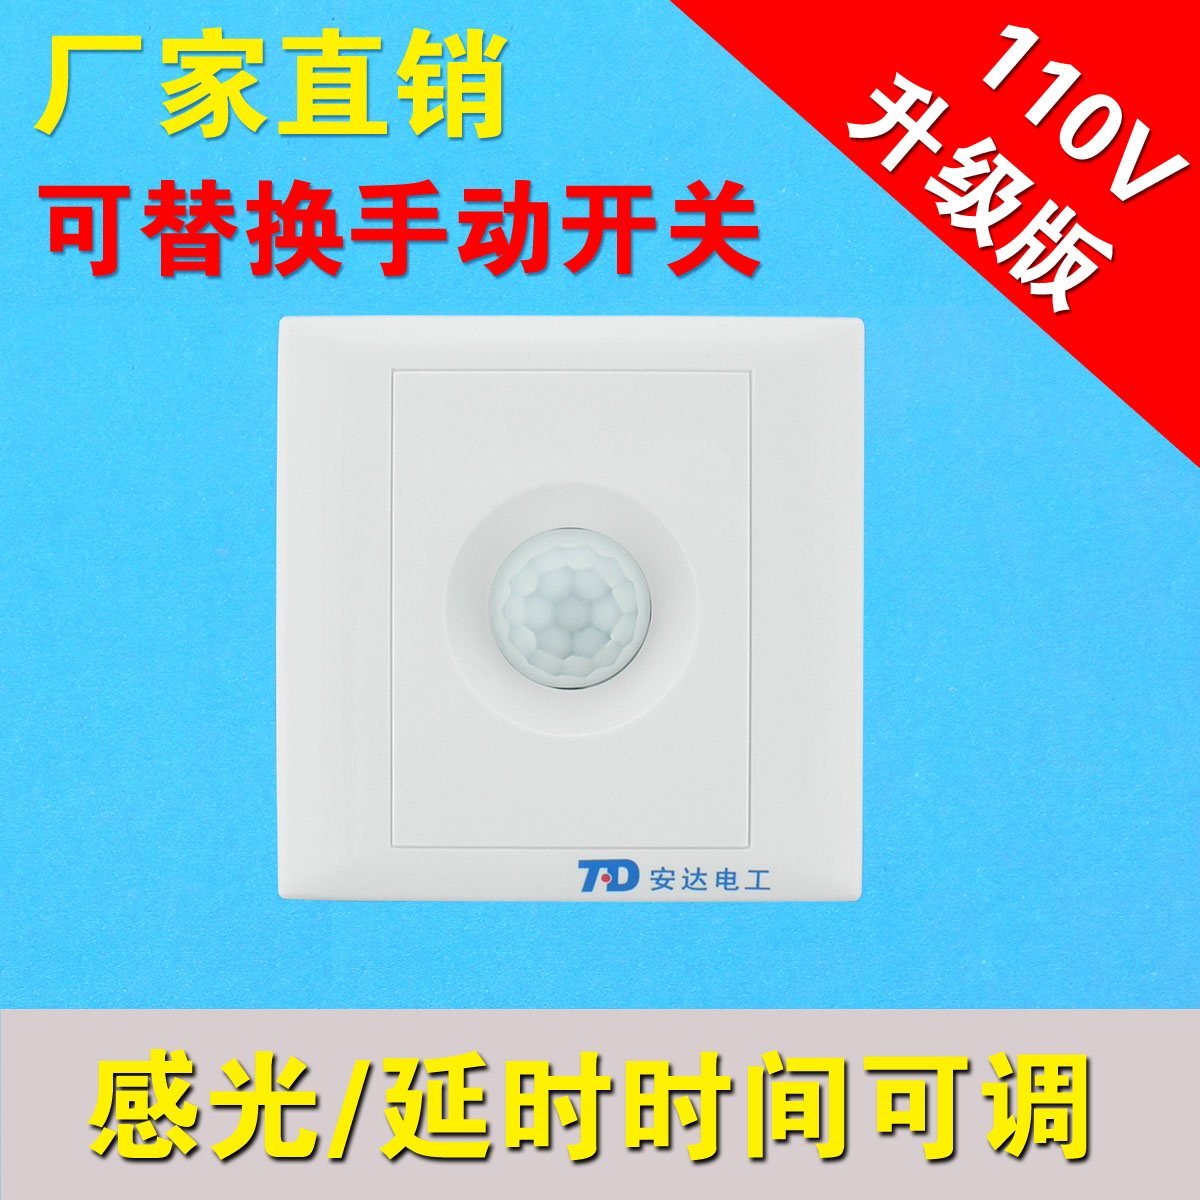 110 v sound human body infrared sensor switch replaces optical touch delay switch/adjustable photosensitive/delay(China (Mainland))